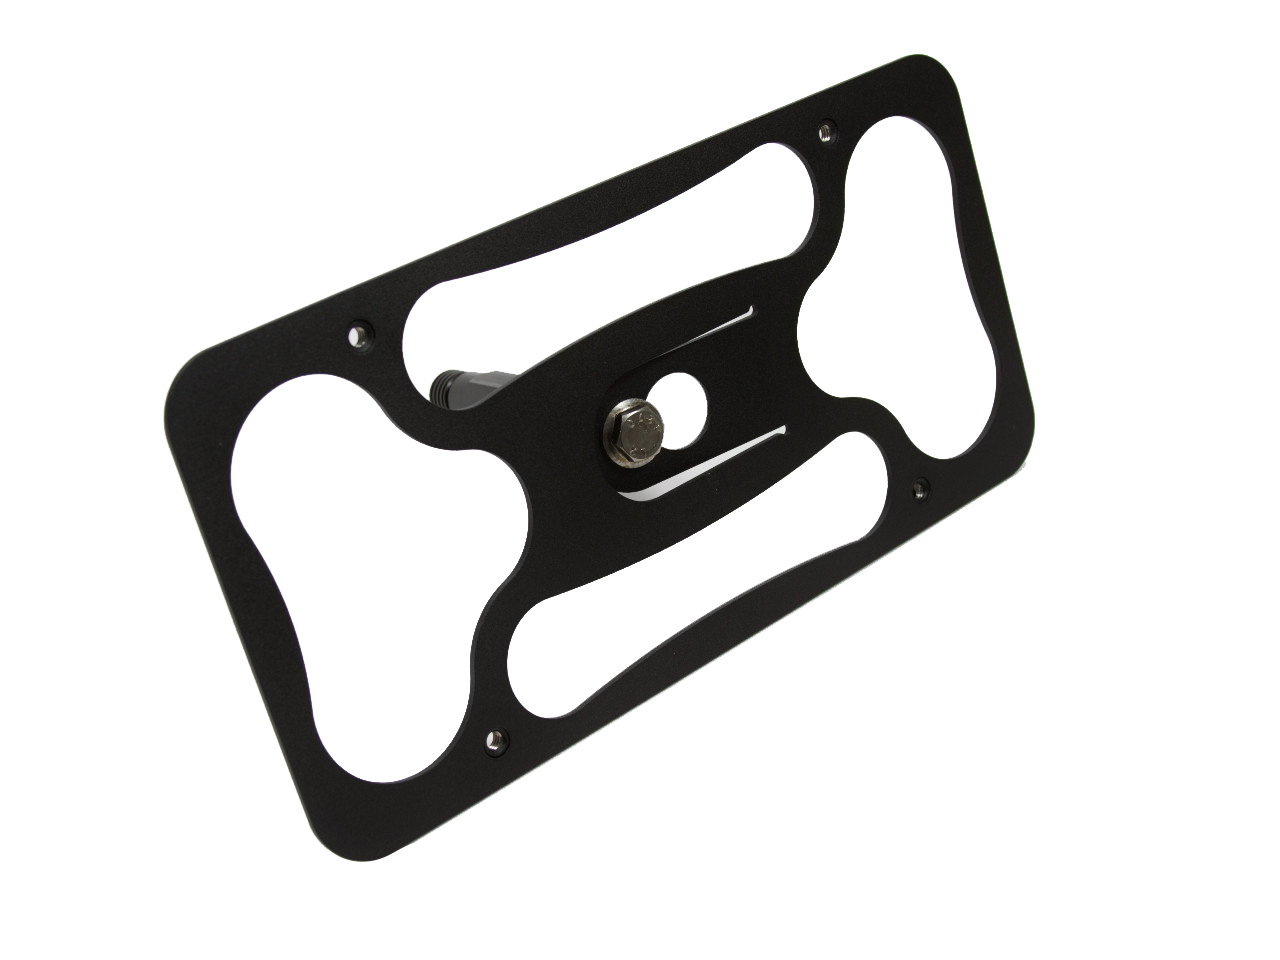 Thumbnail of The Platypus License Plate Mount for 2020 Nissan Versa